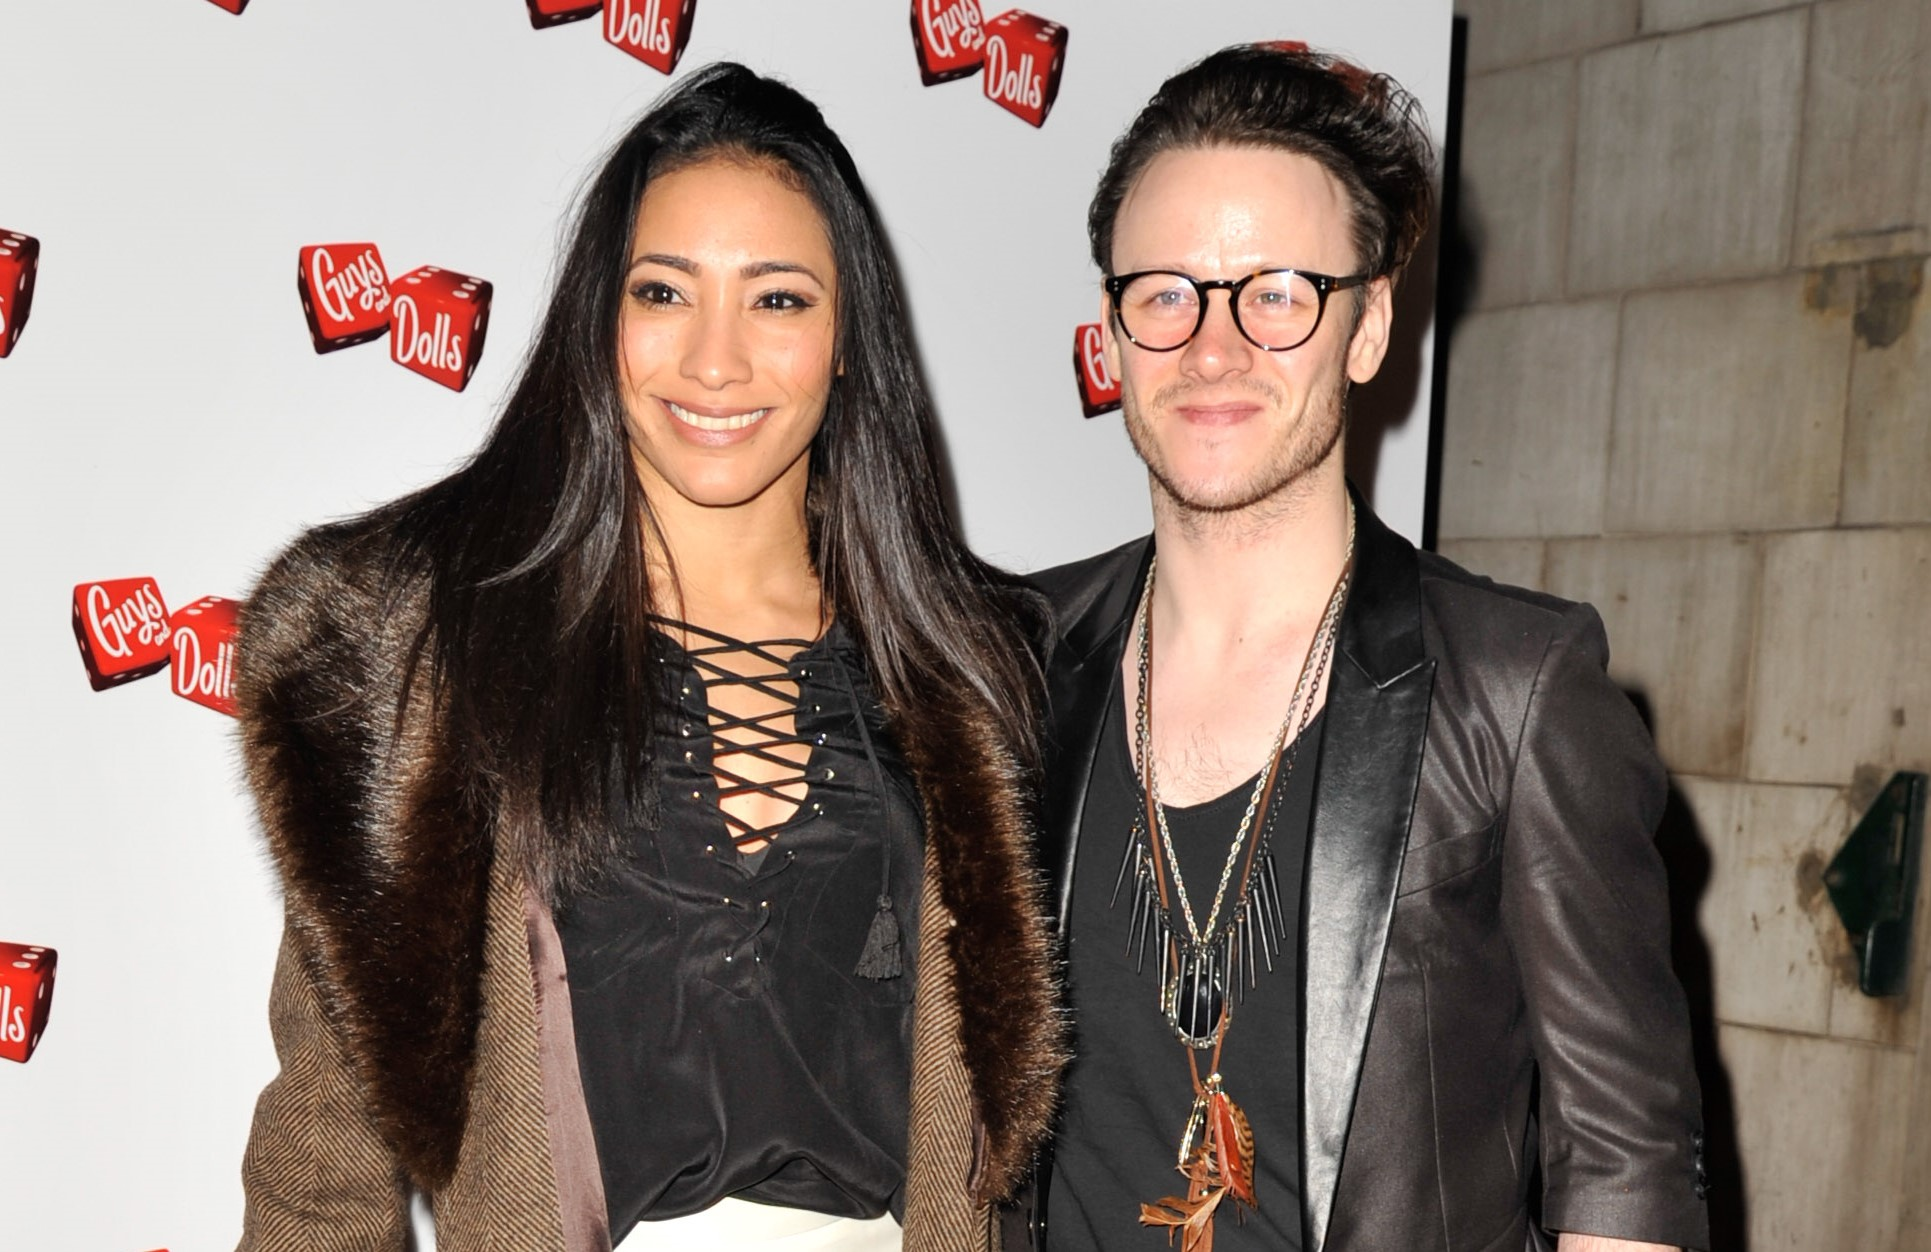 Strictly's Kevin Clifton makes shock declaration of love for ex Karen Clifton